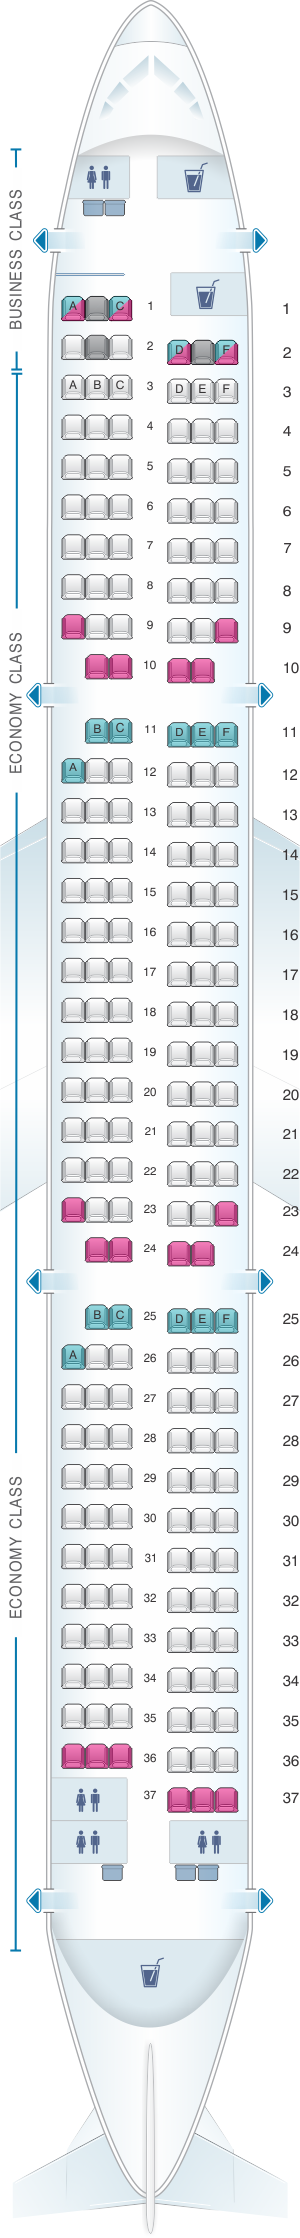 seat map airberlin airbus a321 200 seatmaestro. Black Bedroom Furniture Sets. Home Design Ideas